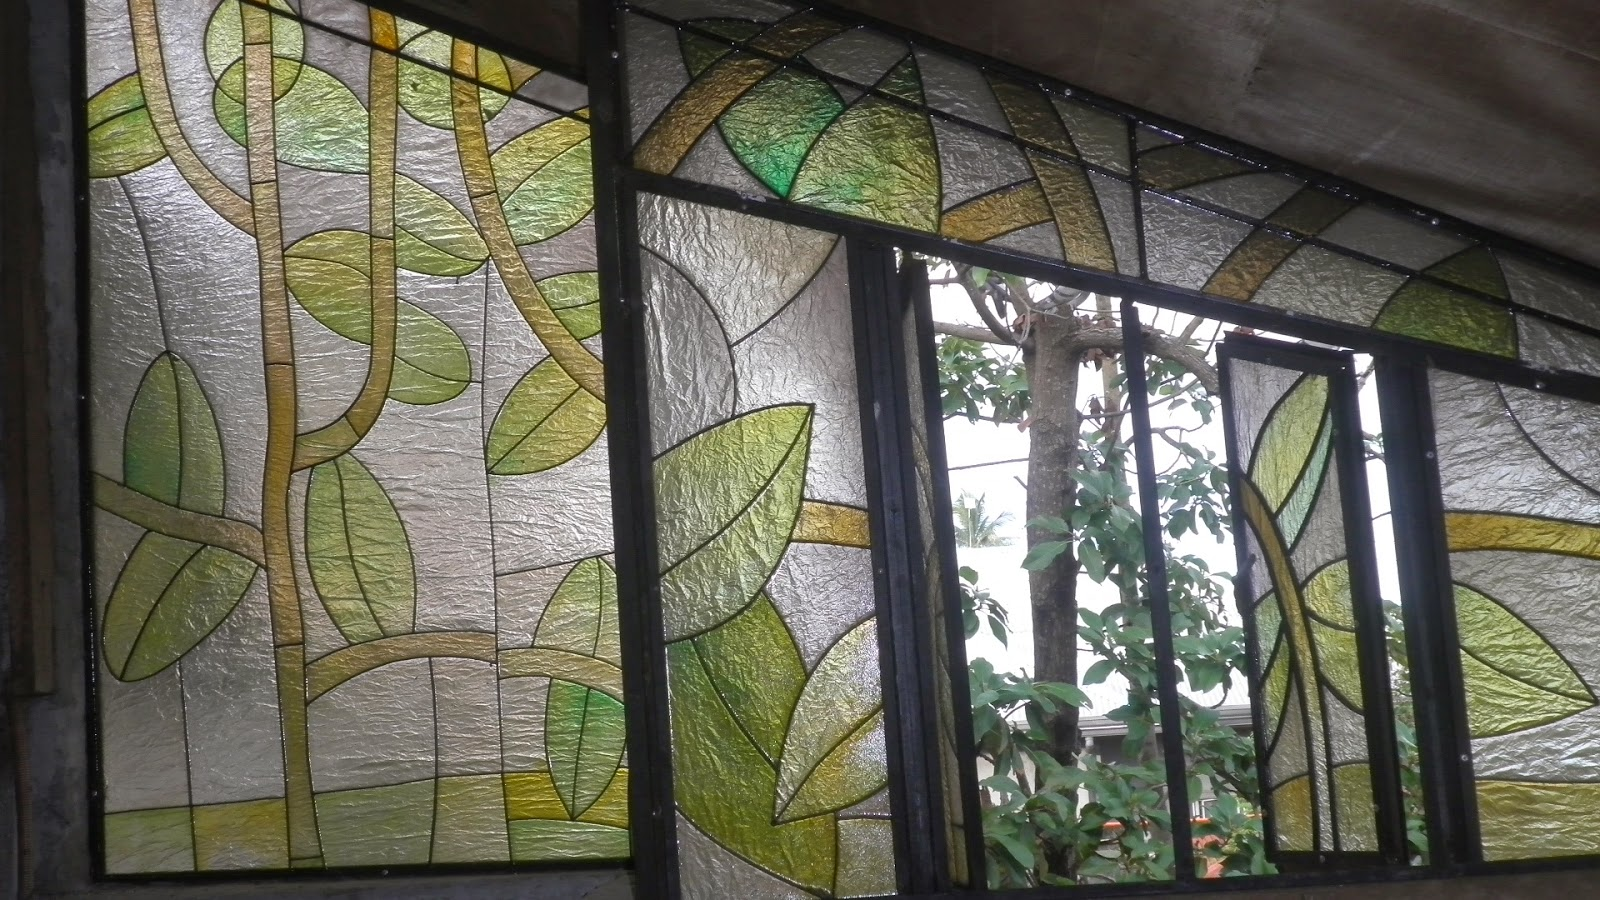 Fiberglass window with steel framing l modern art l nature l